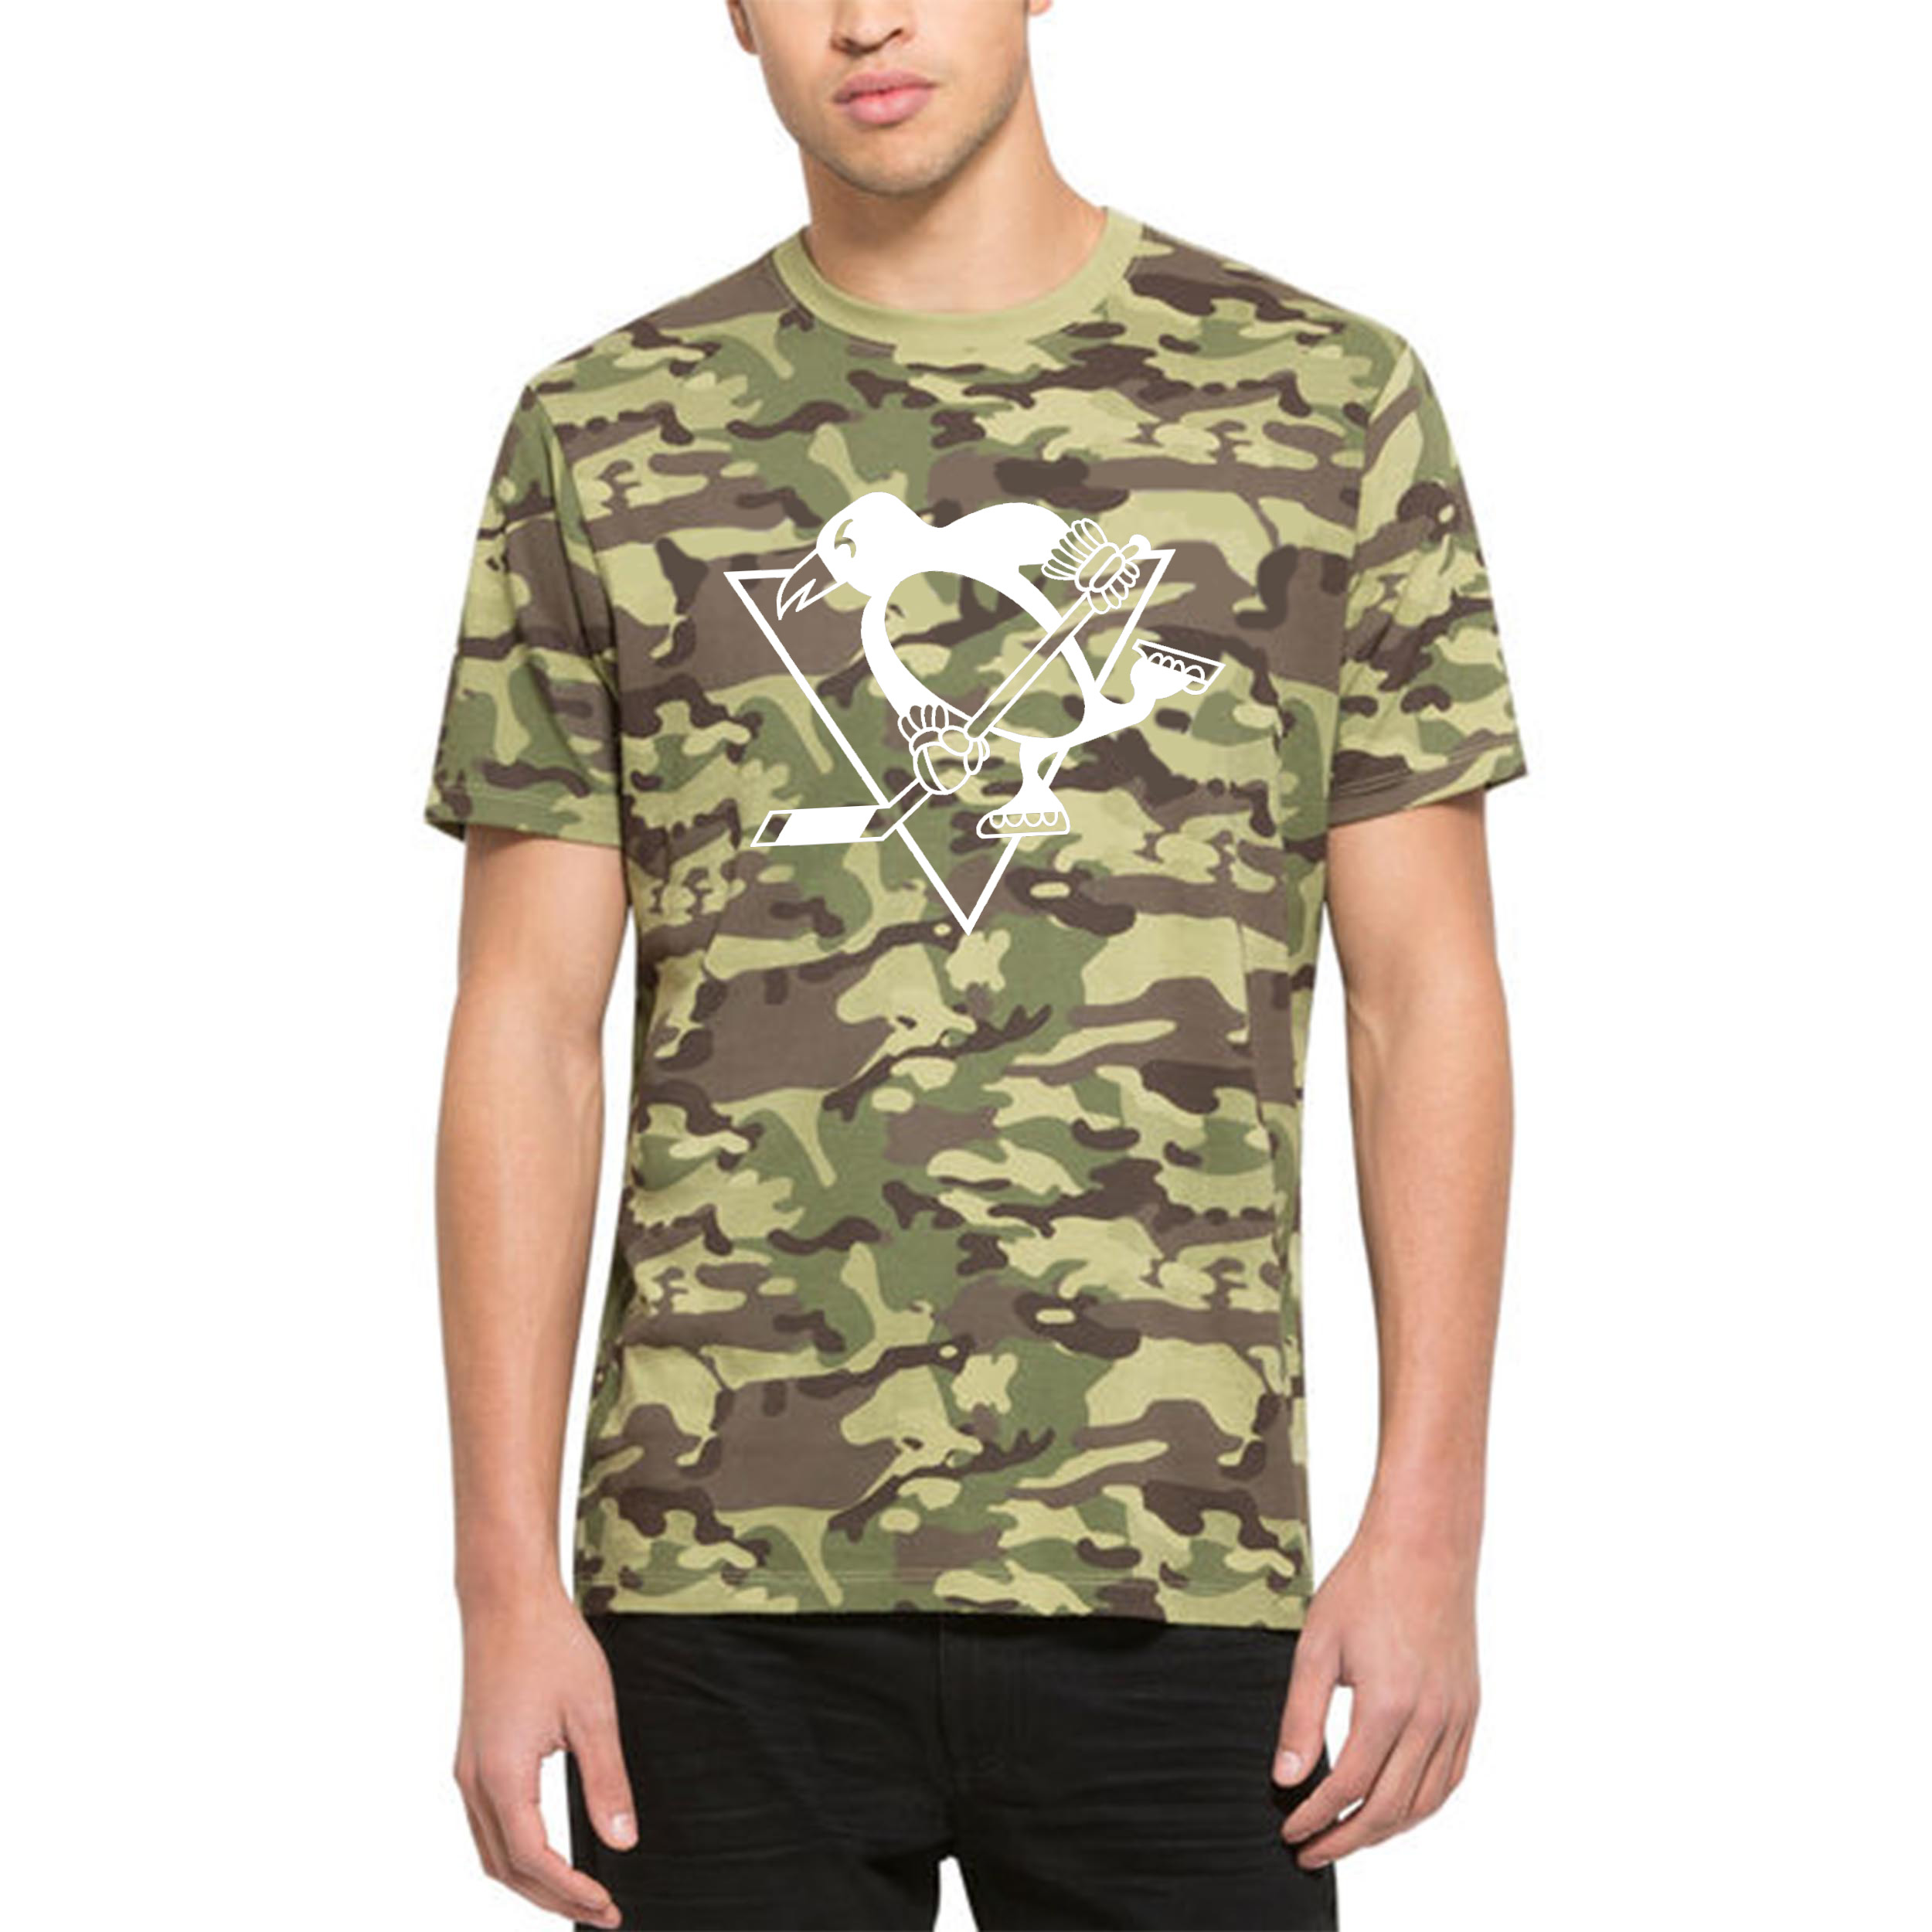 Pittsburgh Penguins '47 Alpha T-Shirt Camo